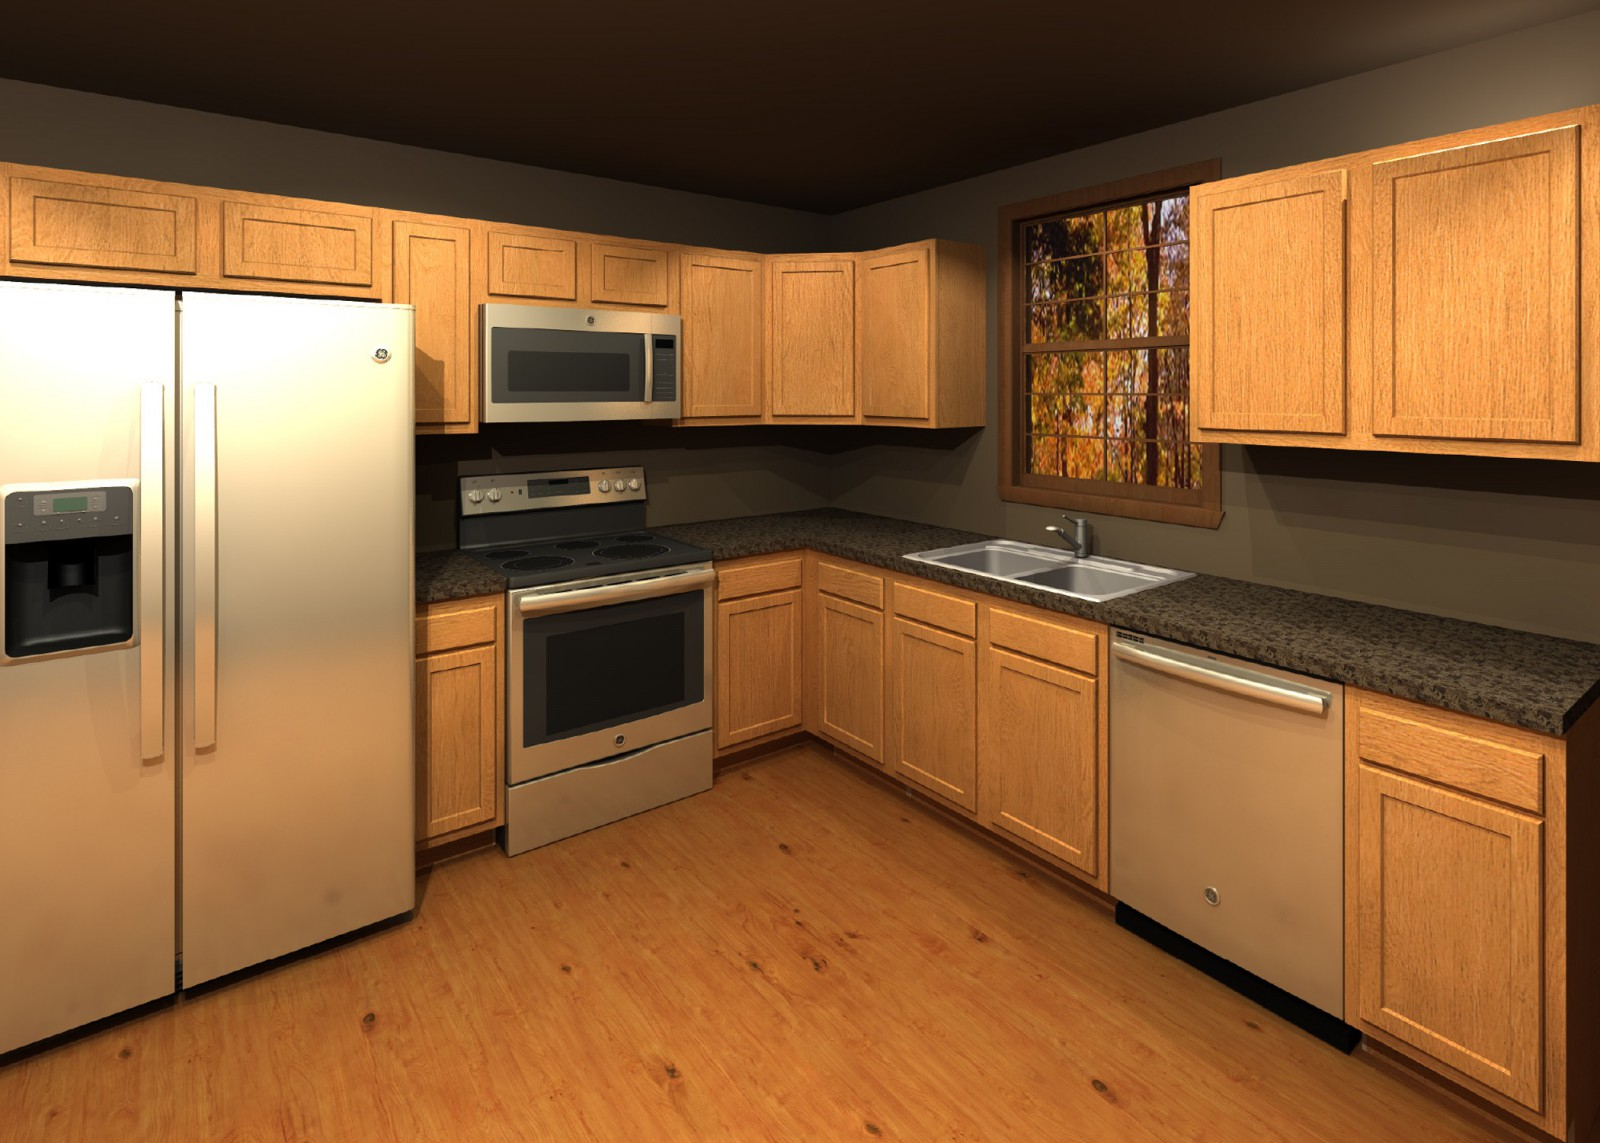 Kitchen Kompact Cabinets - Discount Cabinets & Appliances